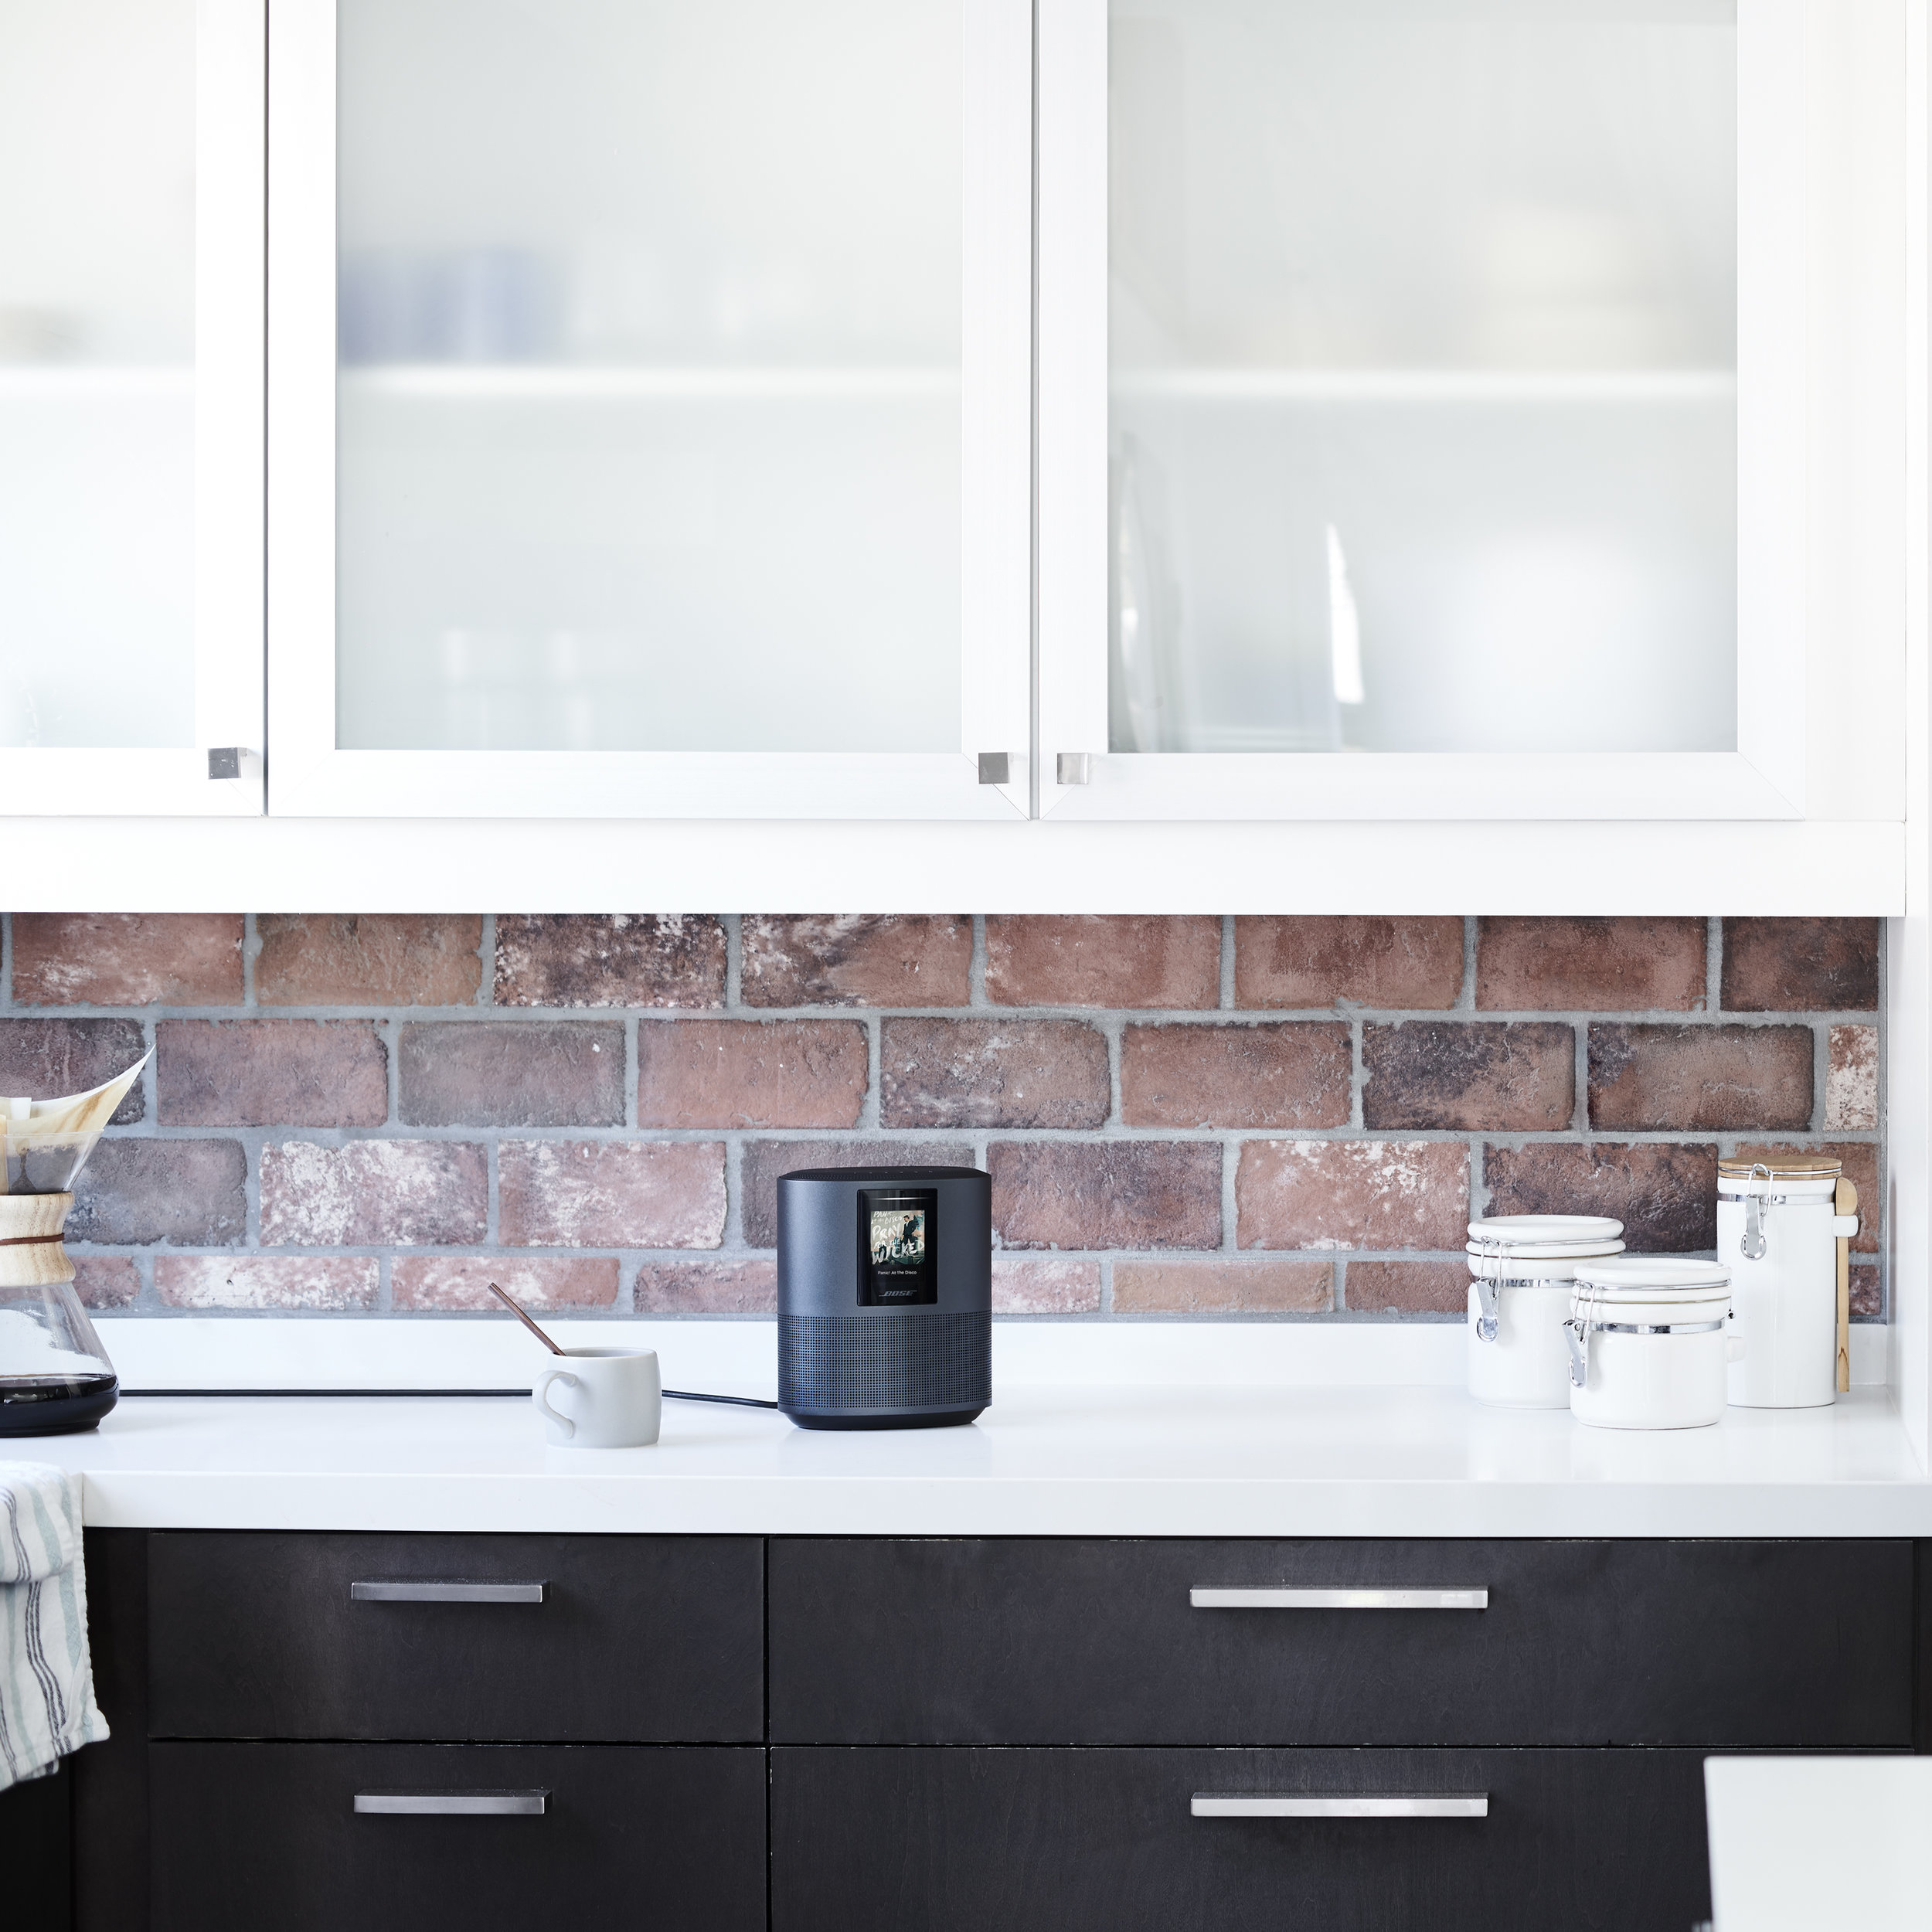 Bose Home Speaker 500 in Black - The new speaker from Bose can be used for multi room audio